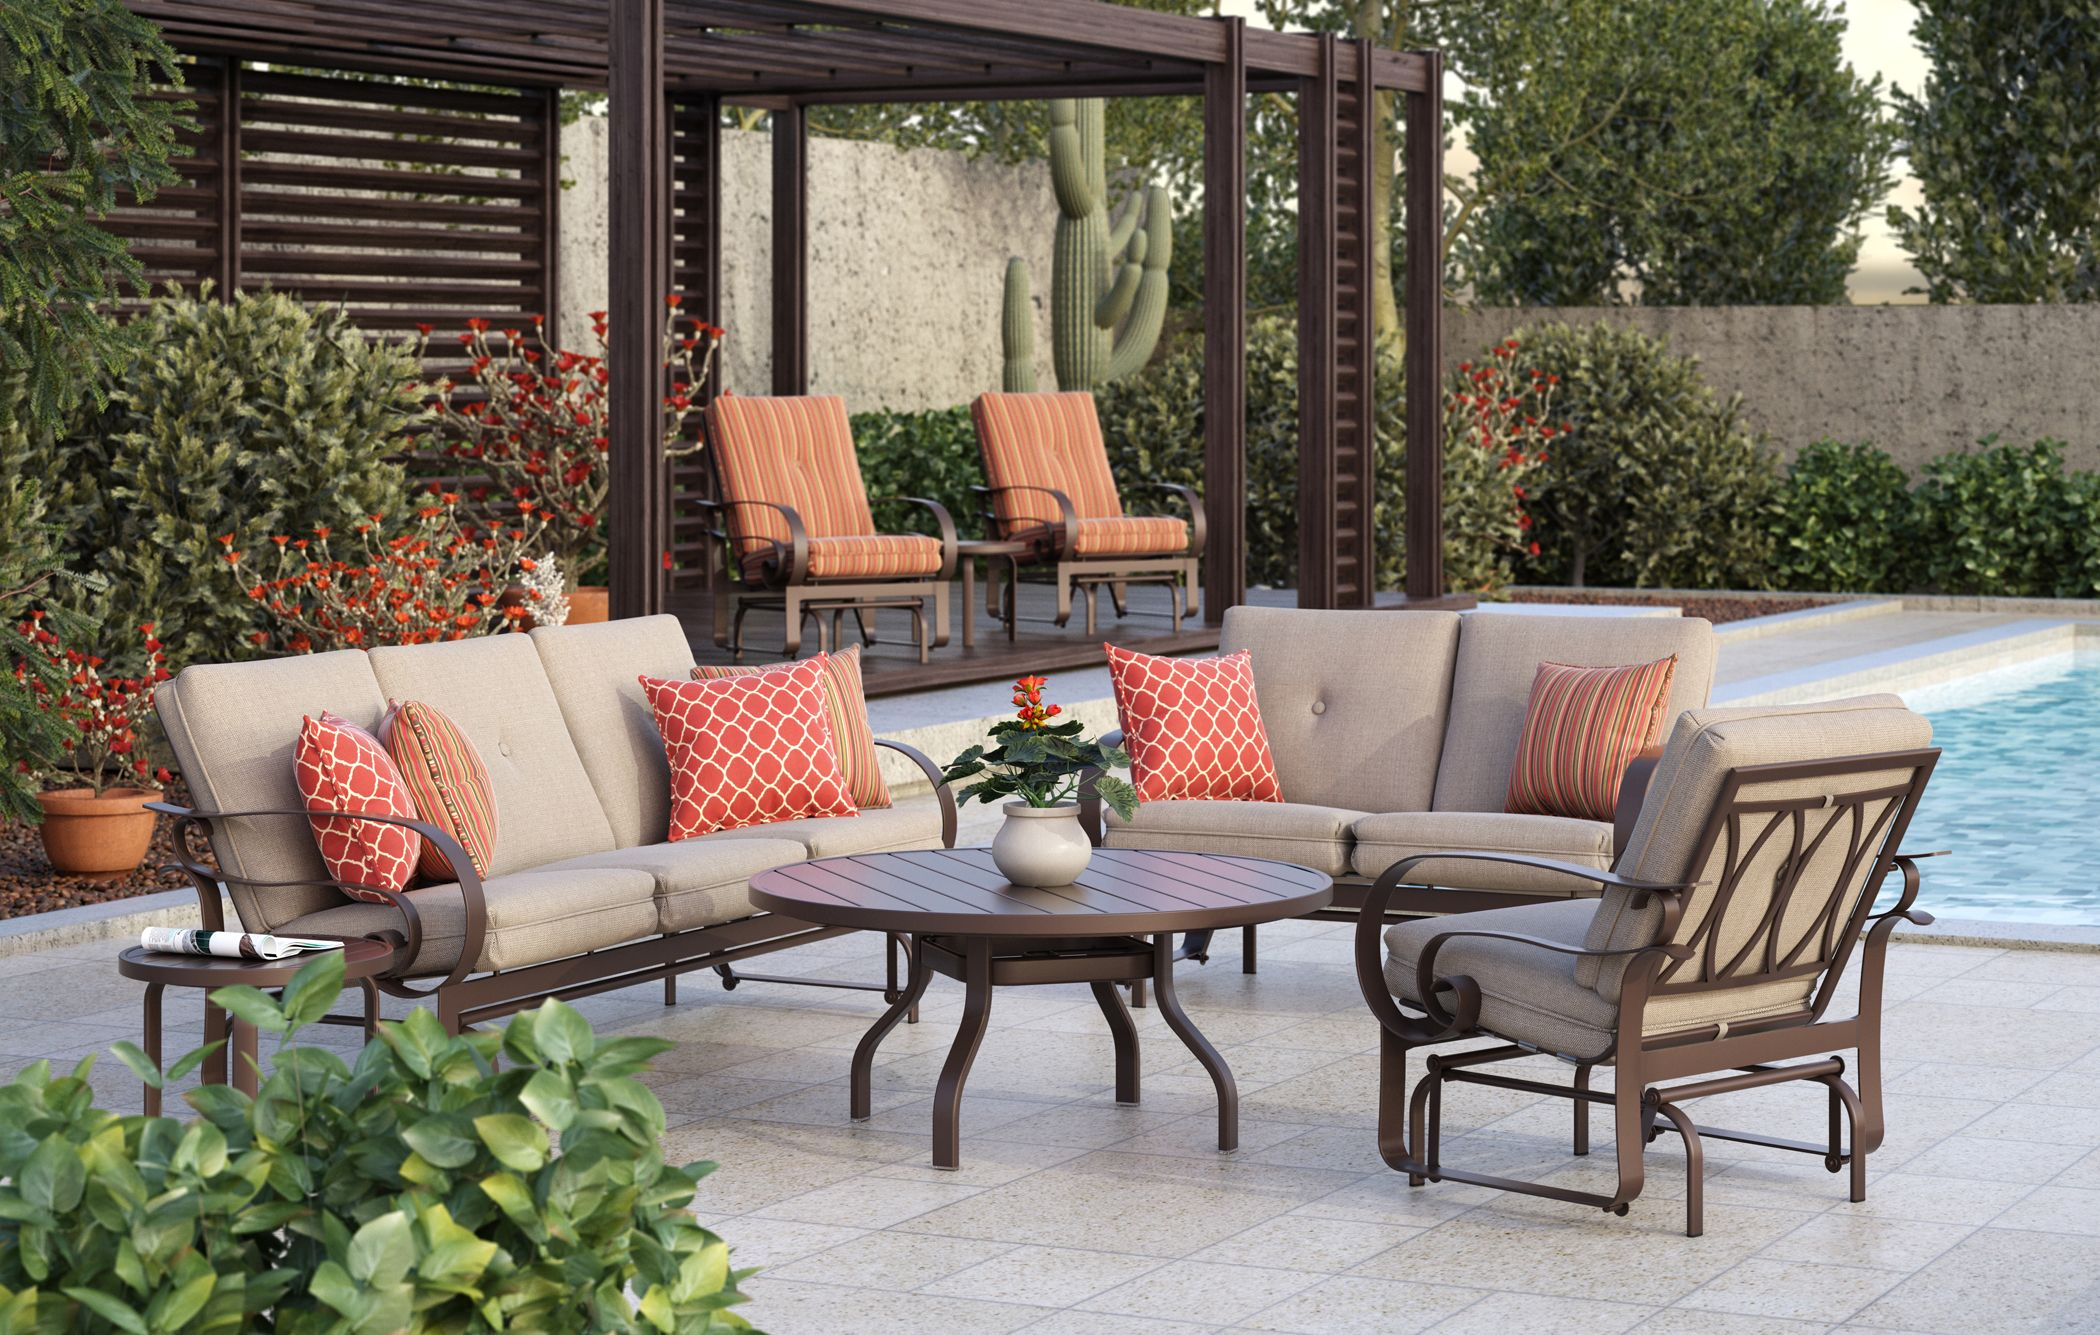 Introducing the Emory Cushion collection for the upcoming ... on For Living Lawrence Fire Pit id=61337